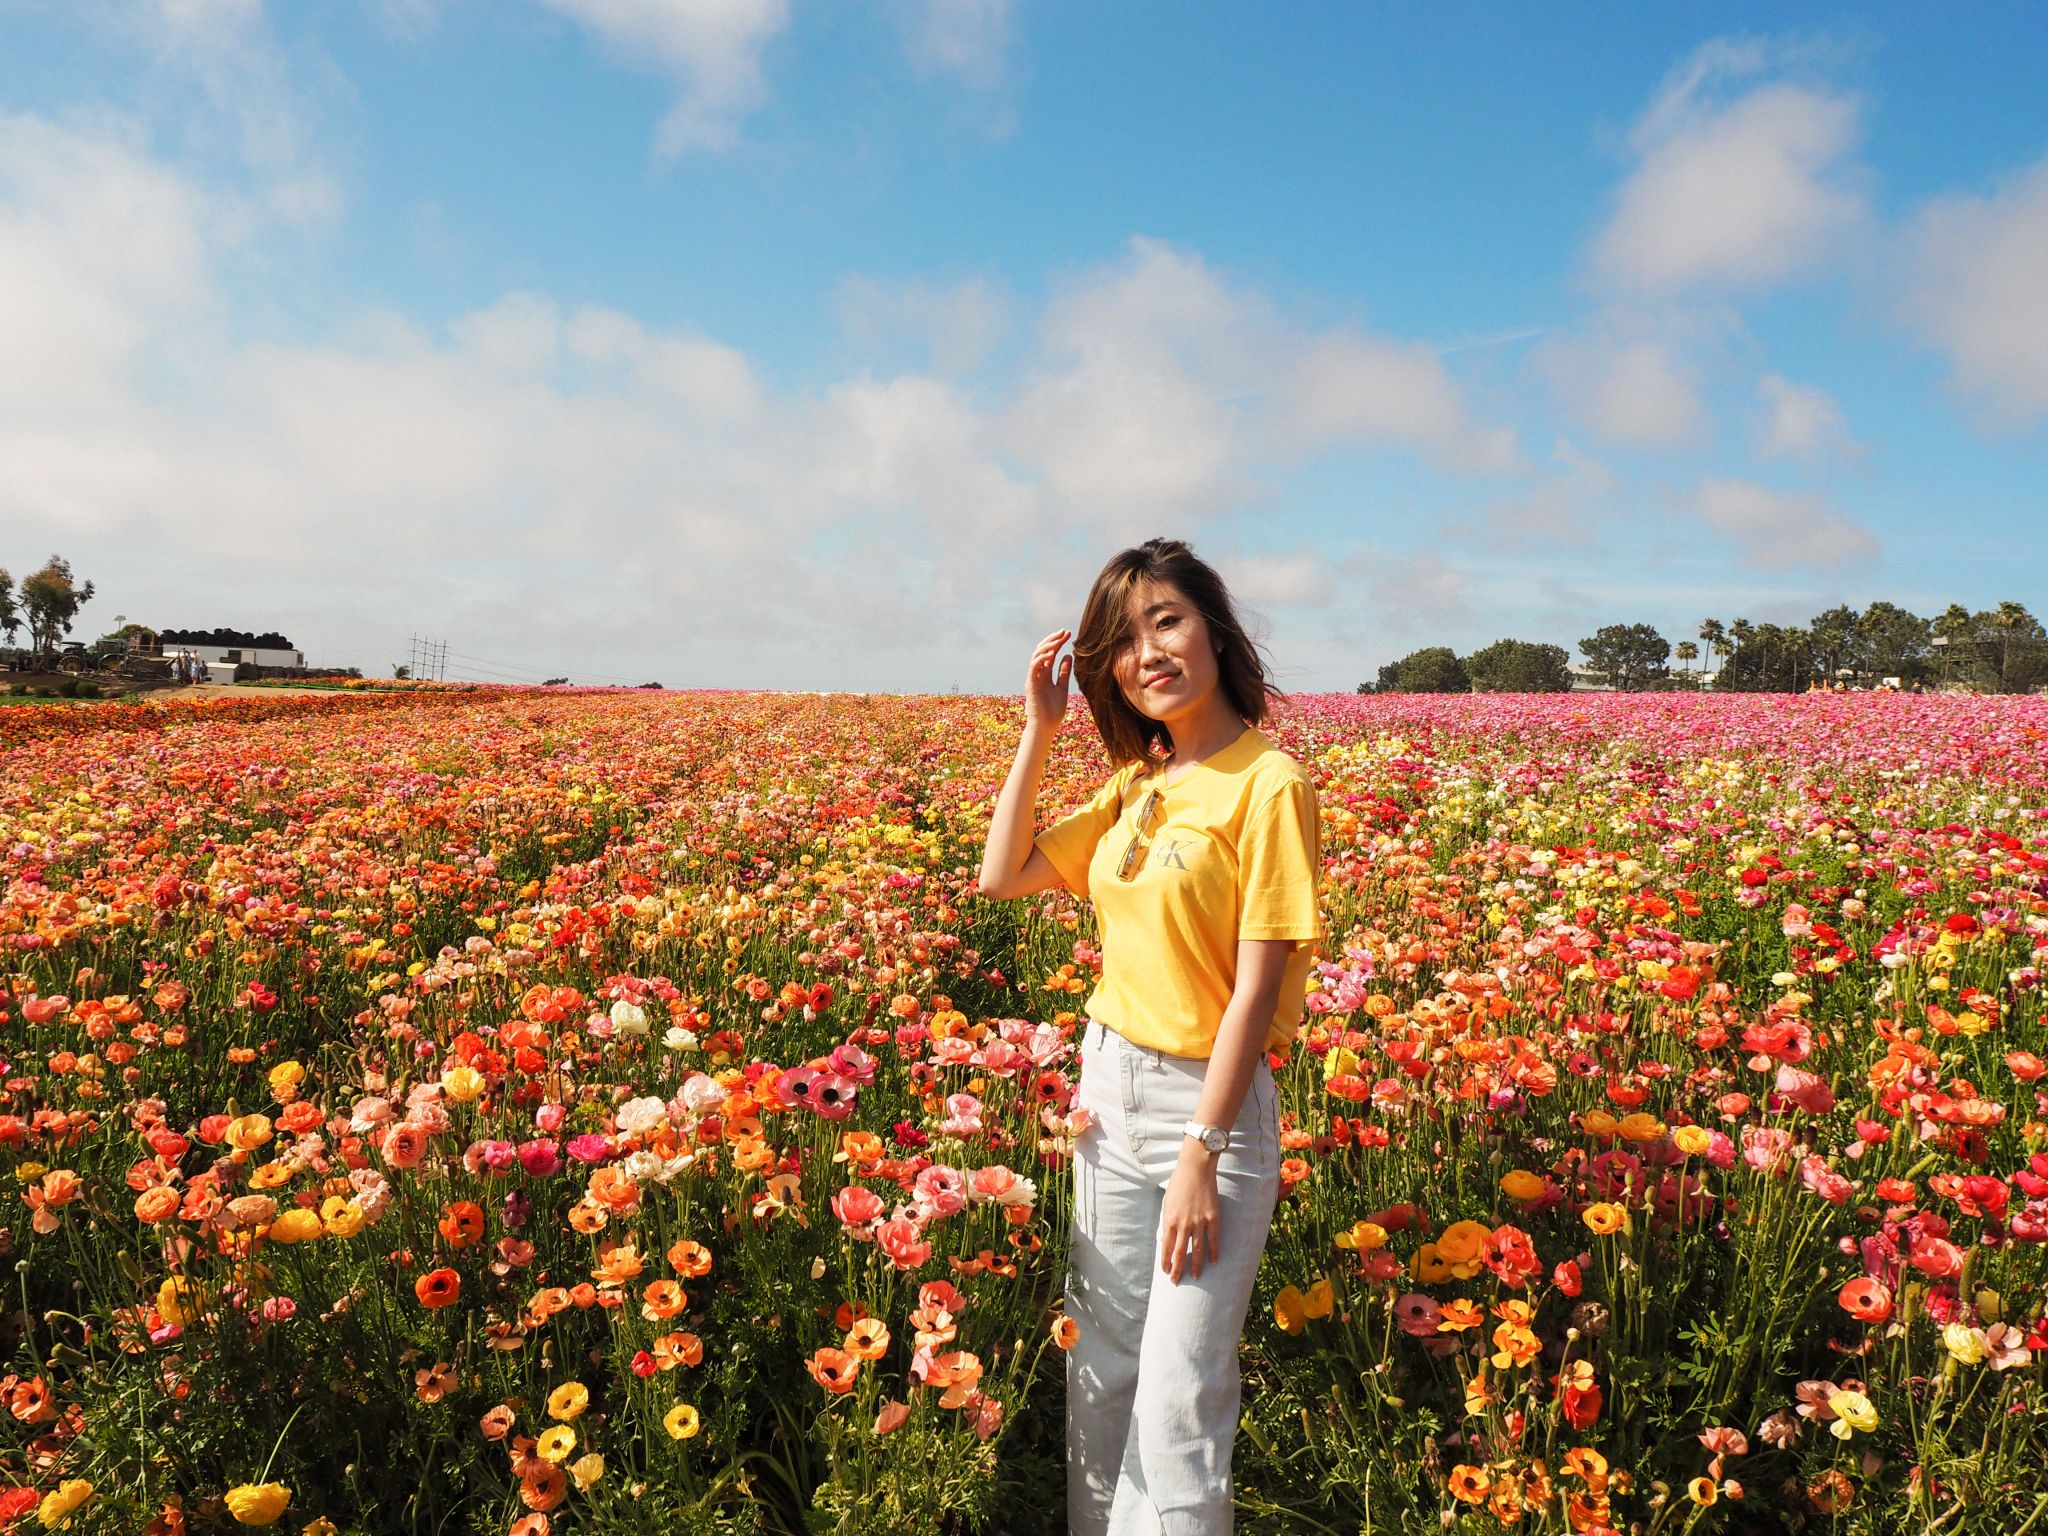 My Spring Uniform // The Flower Fields